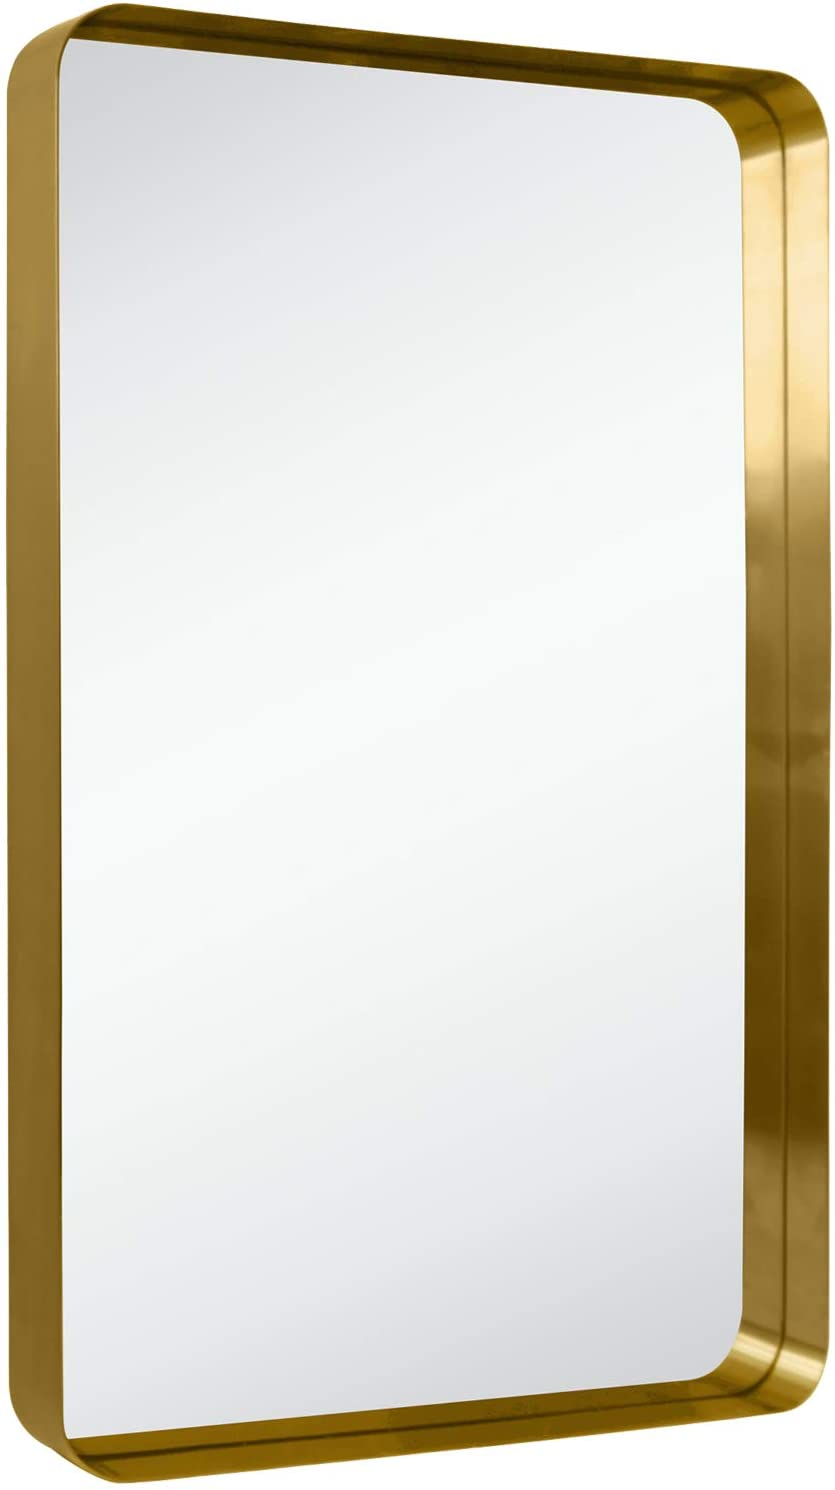 Amazon Com Tehome 24x36 Brushed Gold Metal Framed Bathroom Mirror For Wall In Stainless Steel Rounded Rectangular Bathroom Vanity Mirrors Wall Mounted Home Kitchen